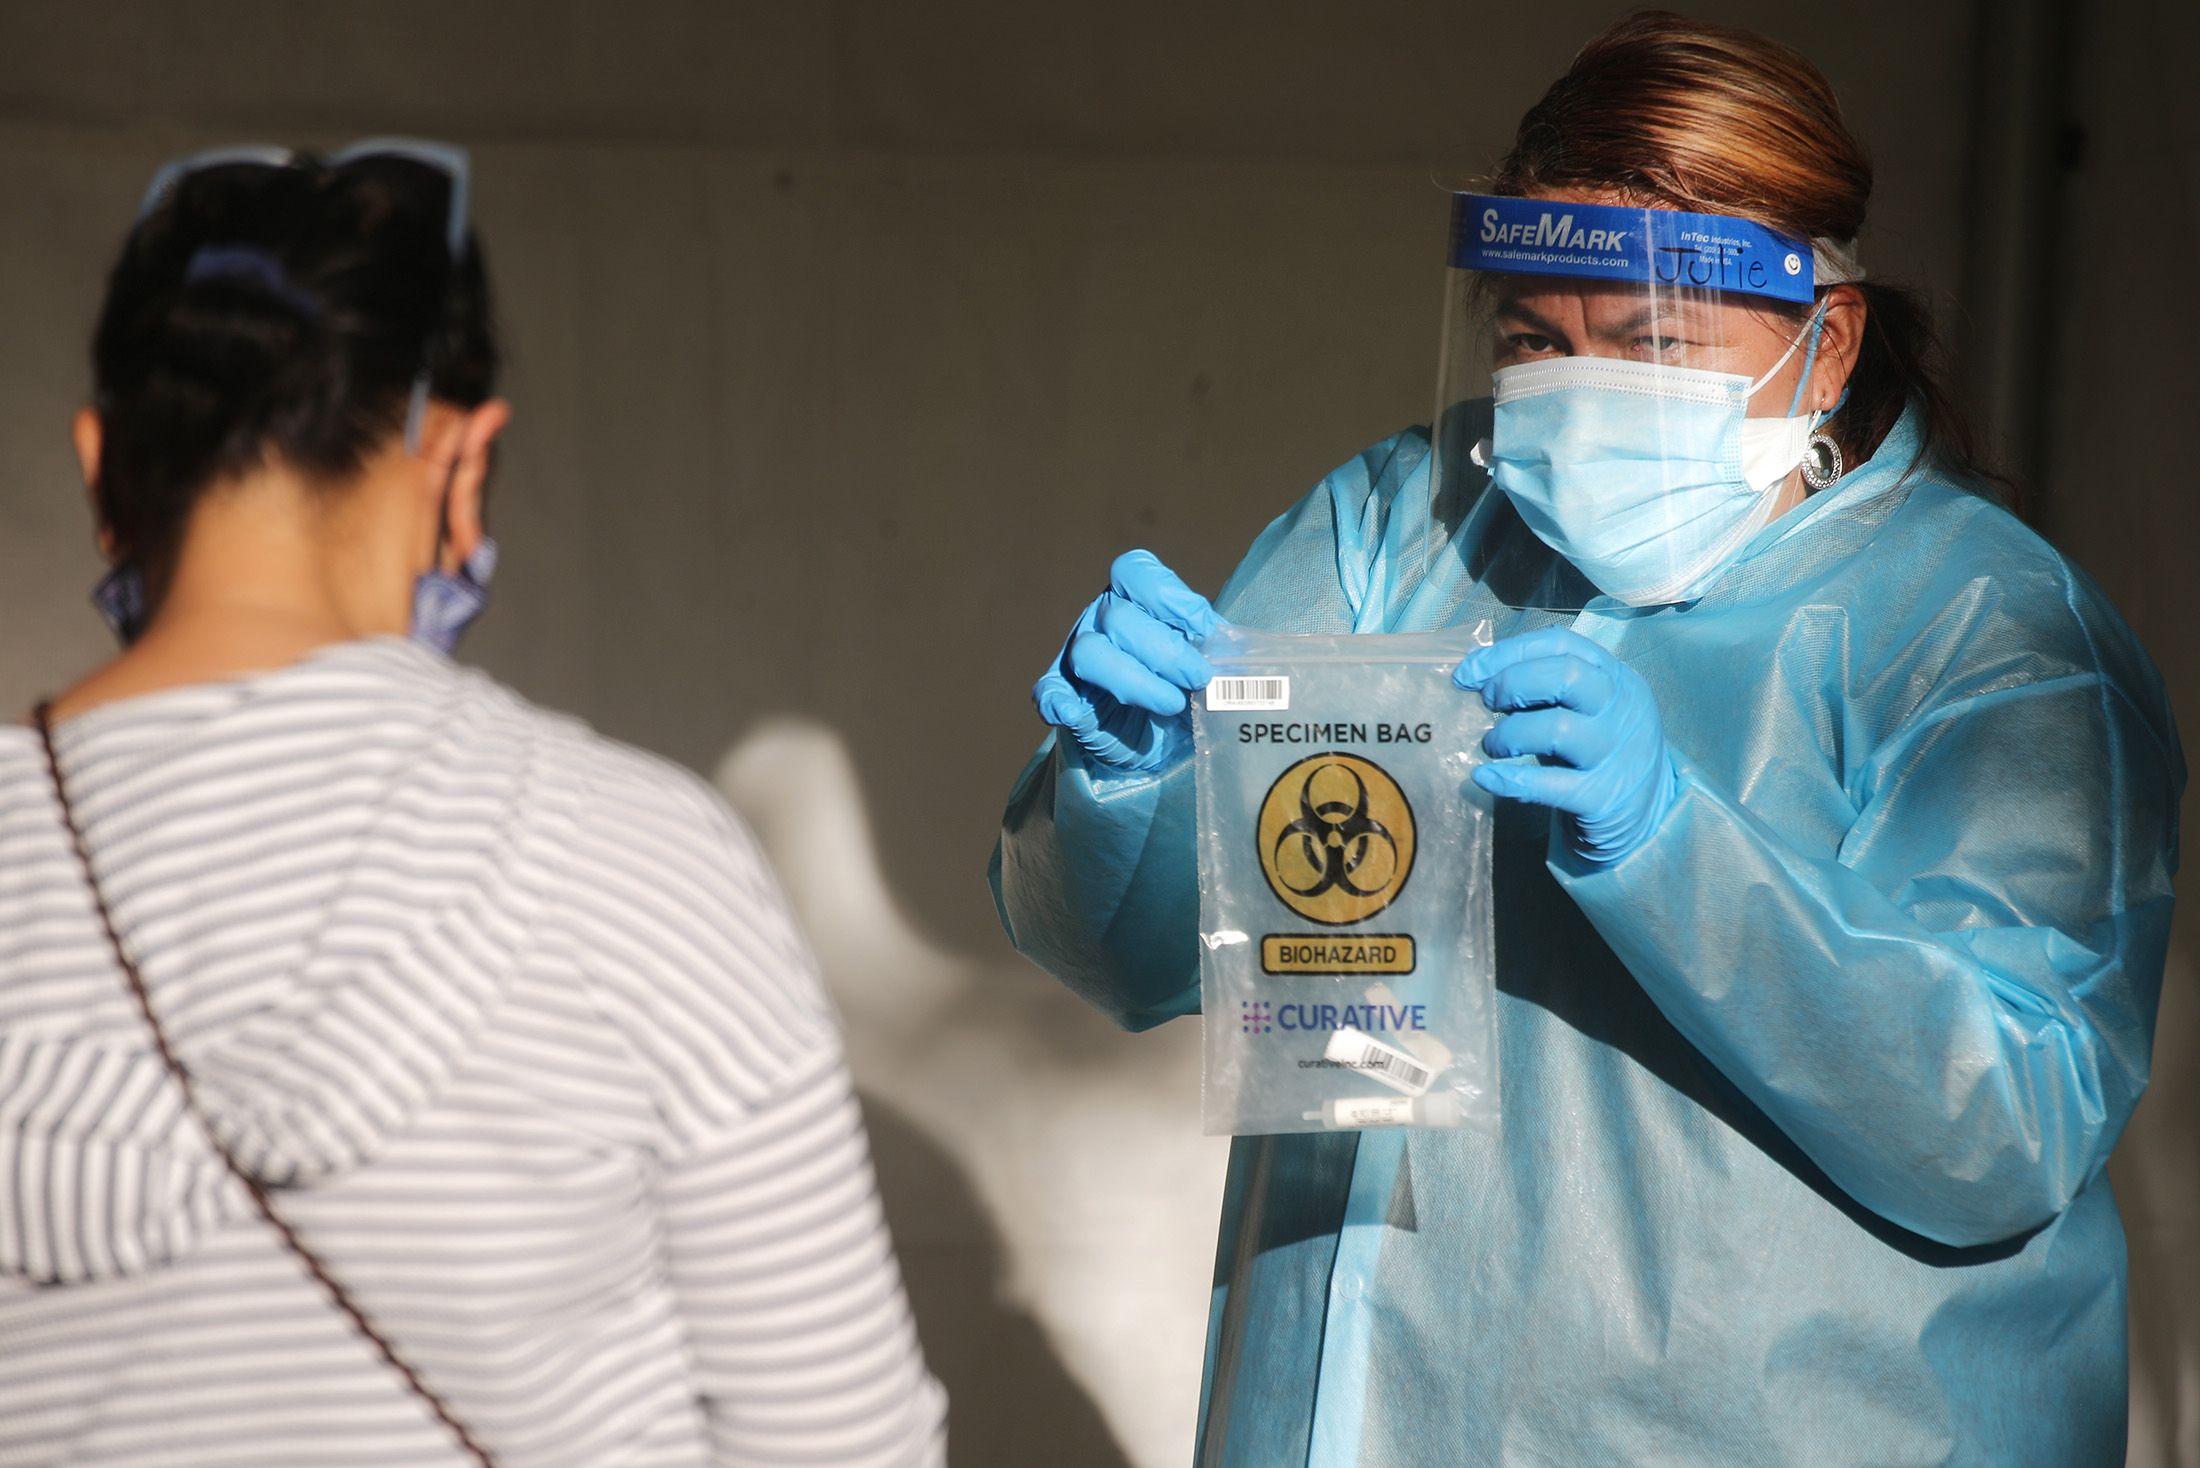 Black, Hispanic and Native American workers and their families face greater coronavirus exposure risks, report finds